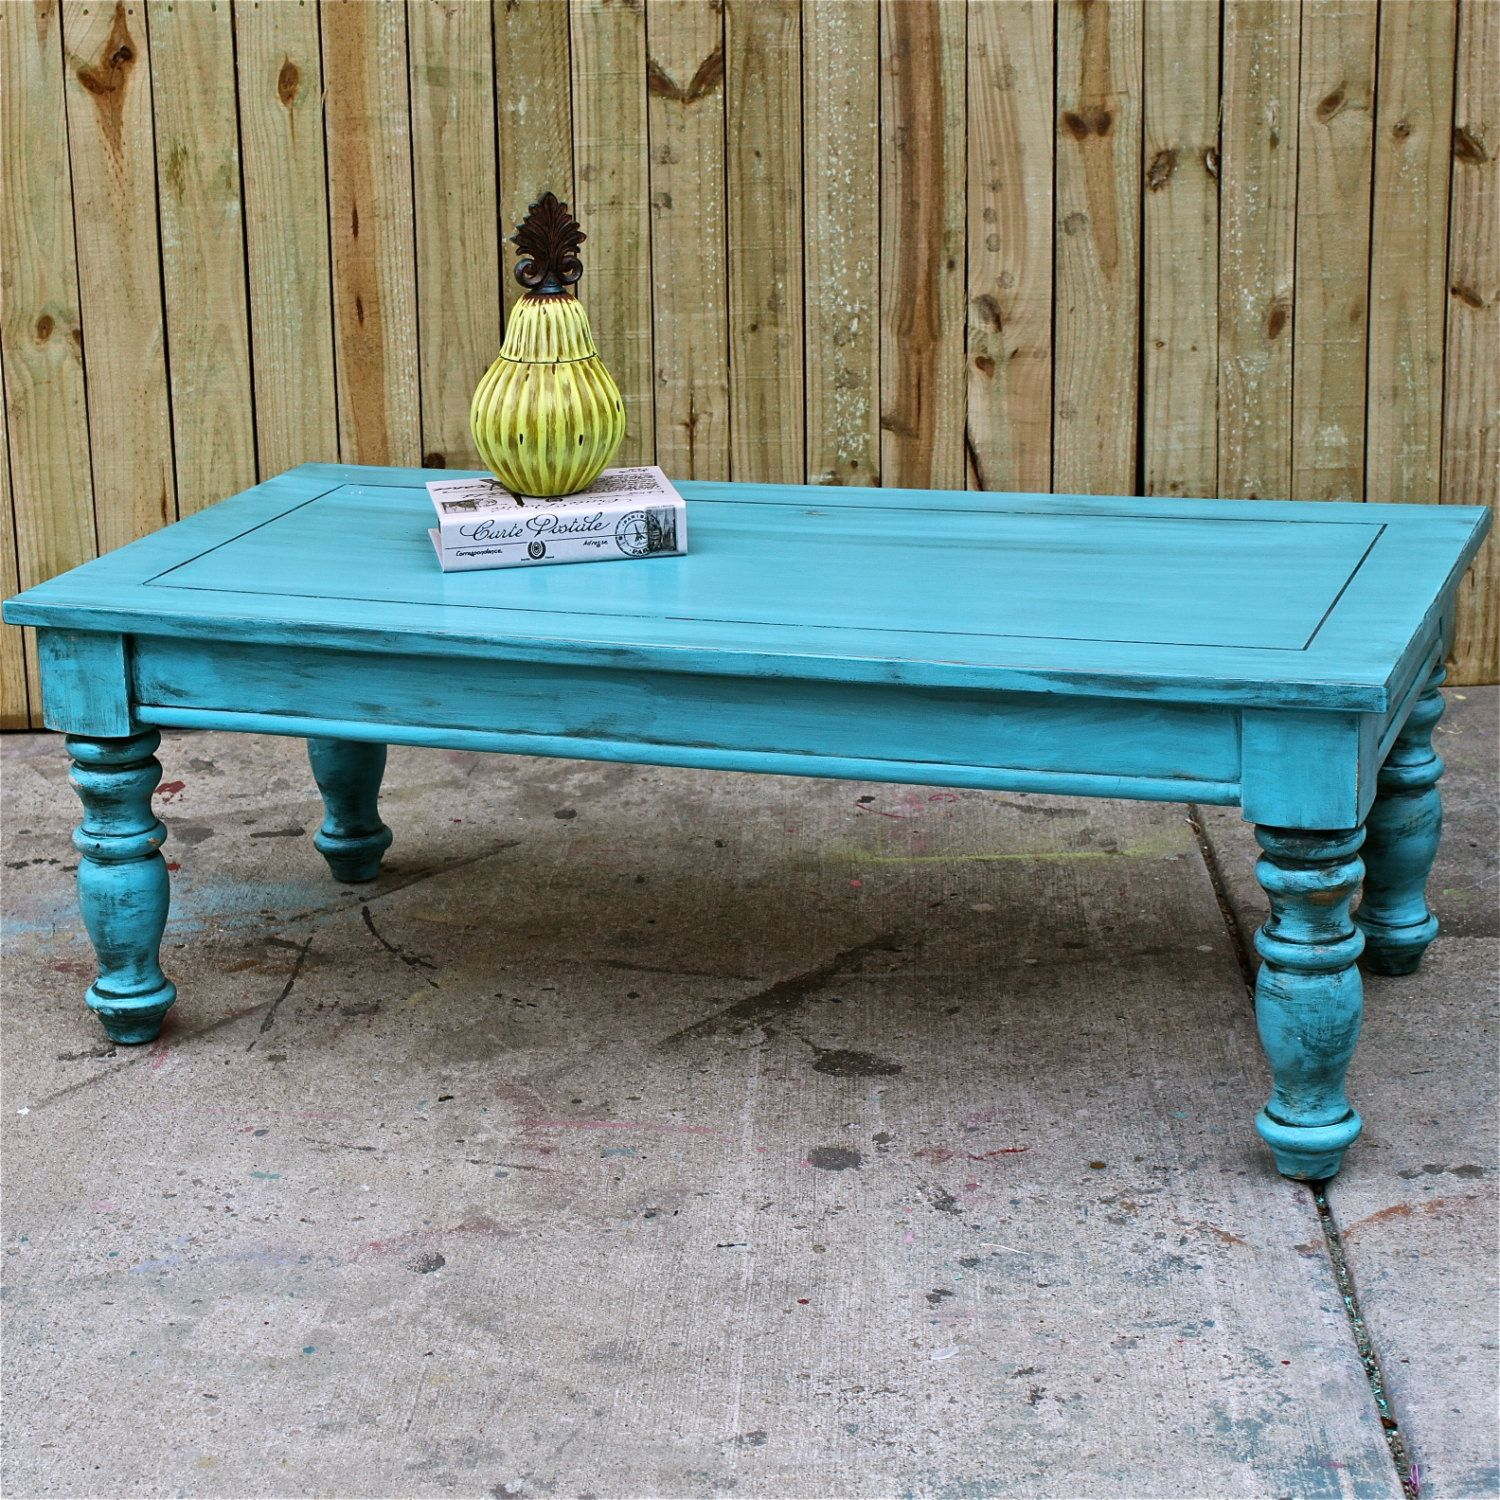 Bayside Blue Coffee Table Vintage Shabby Chic Distressed Living Room Furniture Tv Stand 175 00 Via Etsy